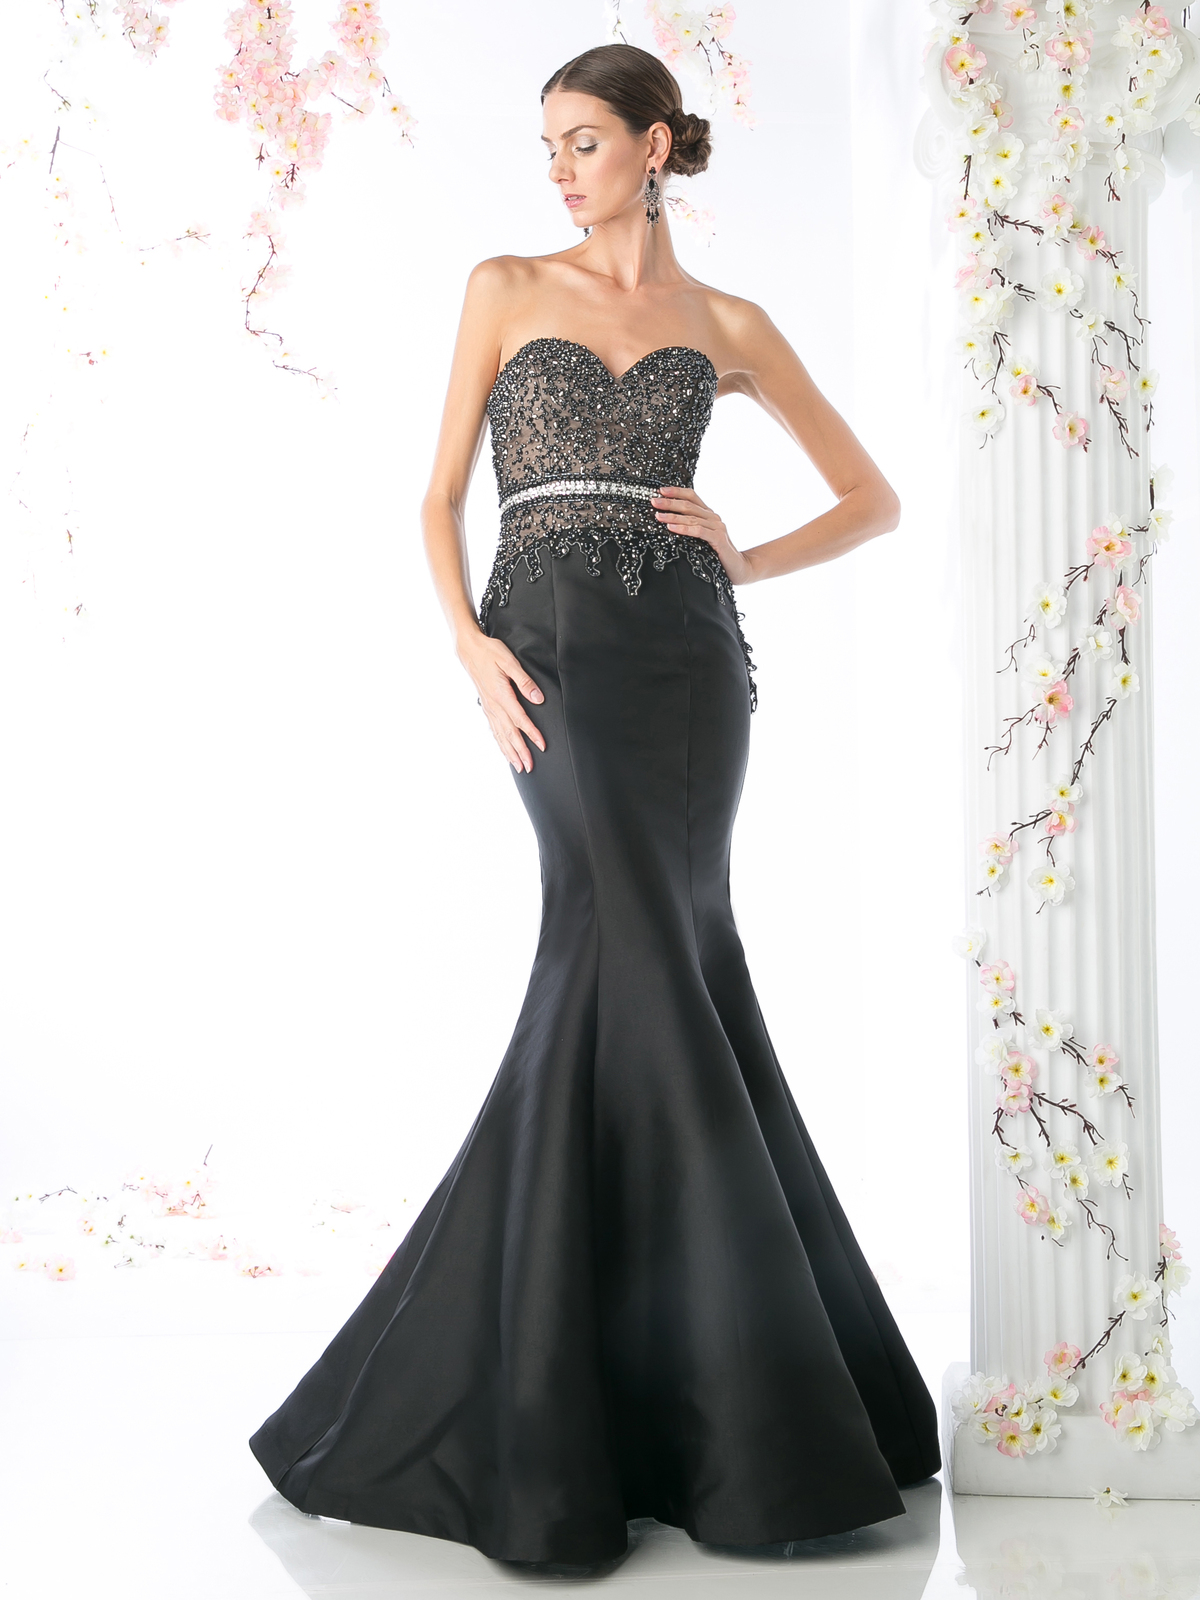 Strapless Trumpet Gown with Sweetheart Neckline | Sung Boutique L.A.